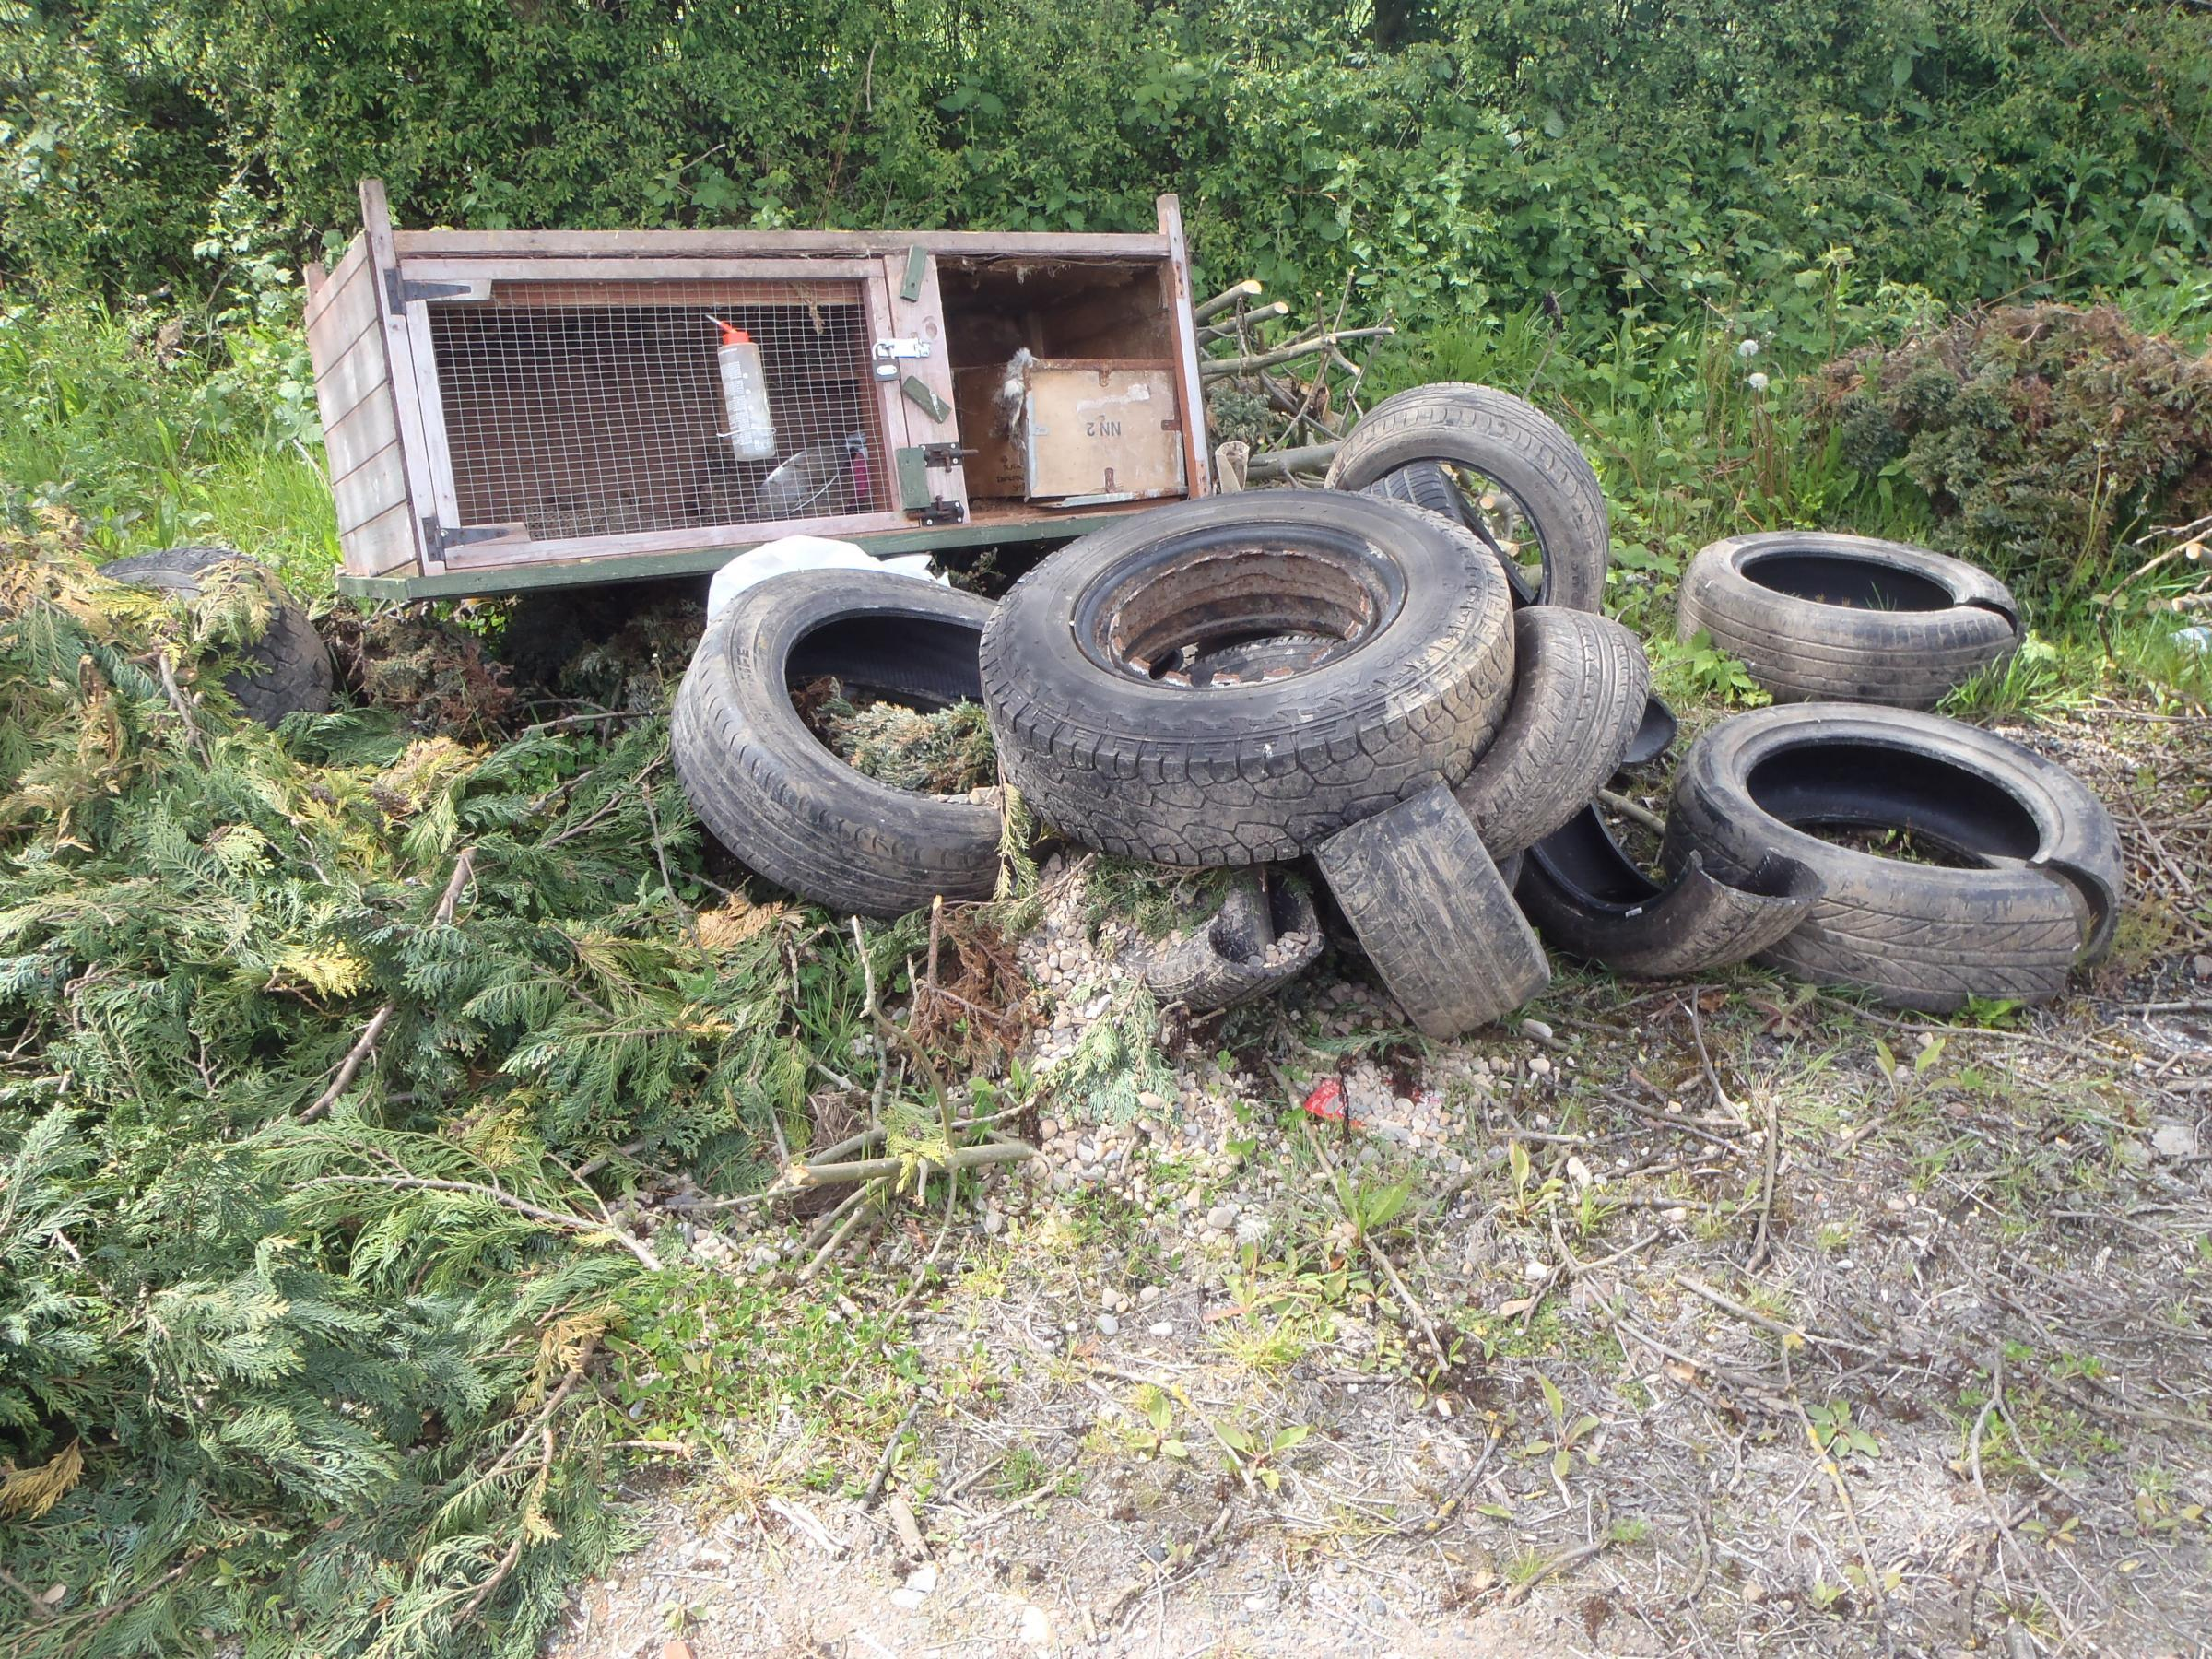 BLIGHT: Fly-tipping is growing problem - and Operation Eyeball is designed to tackle it